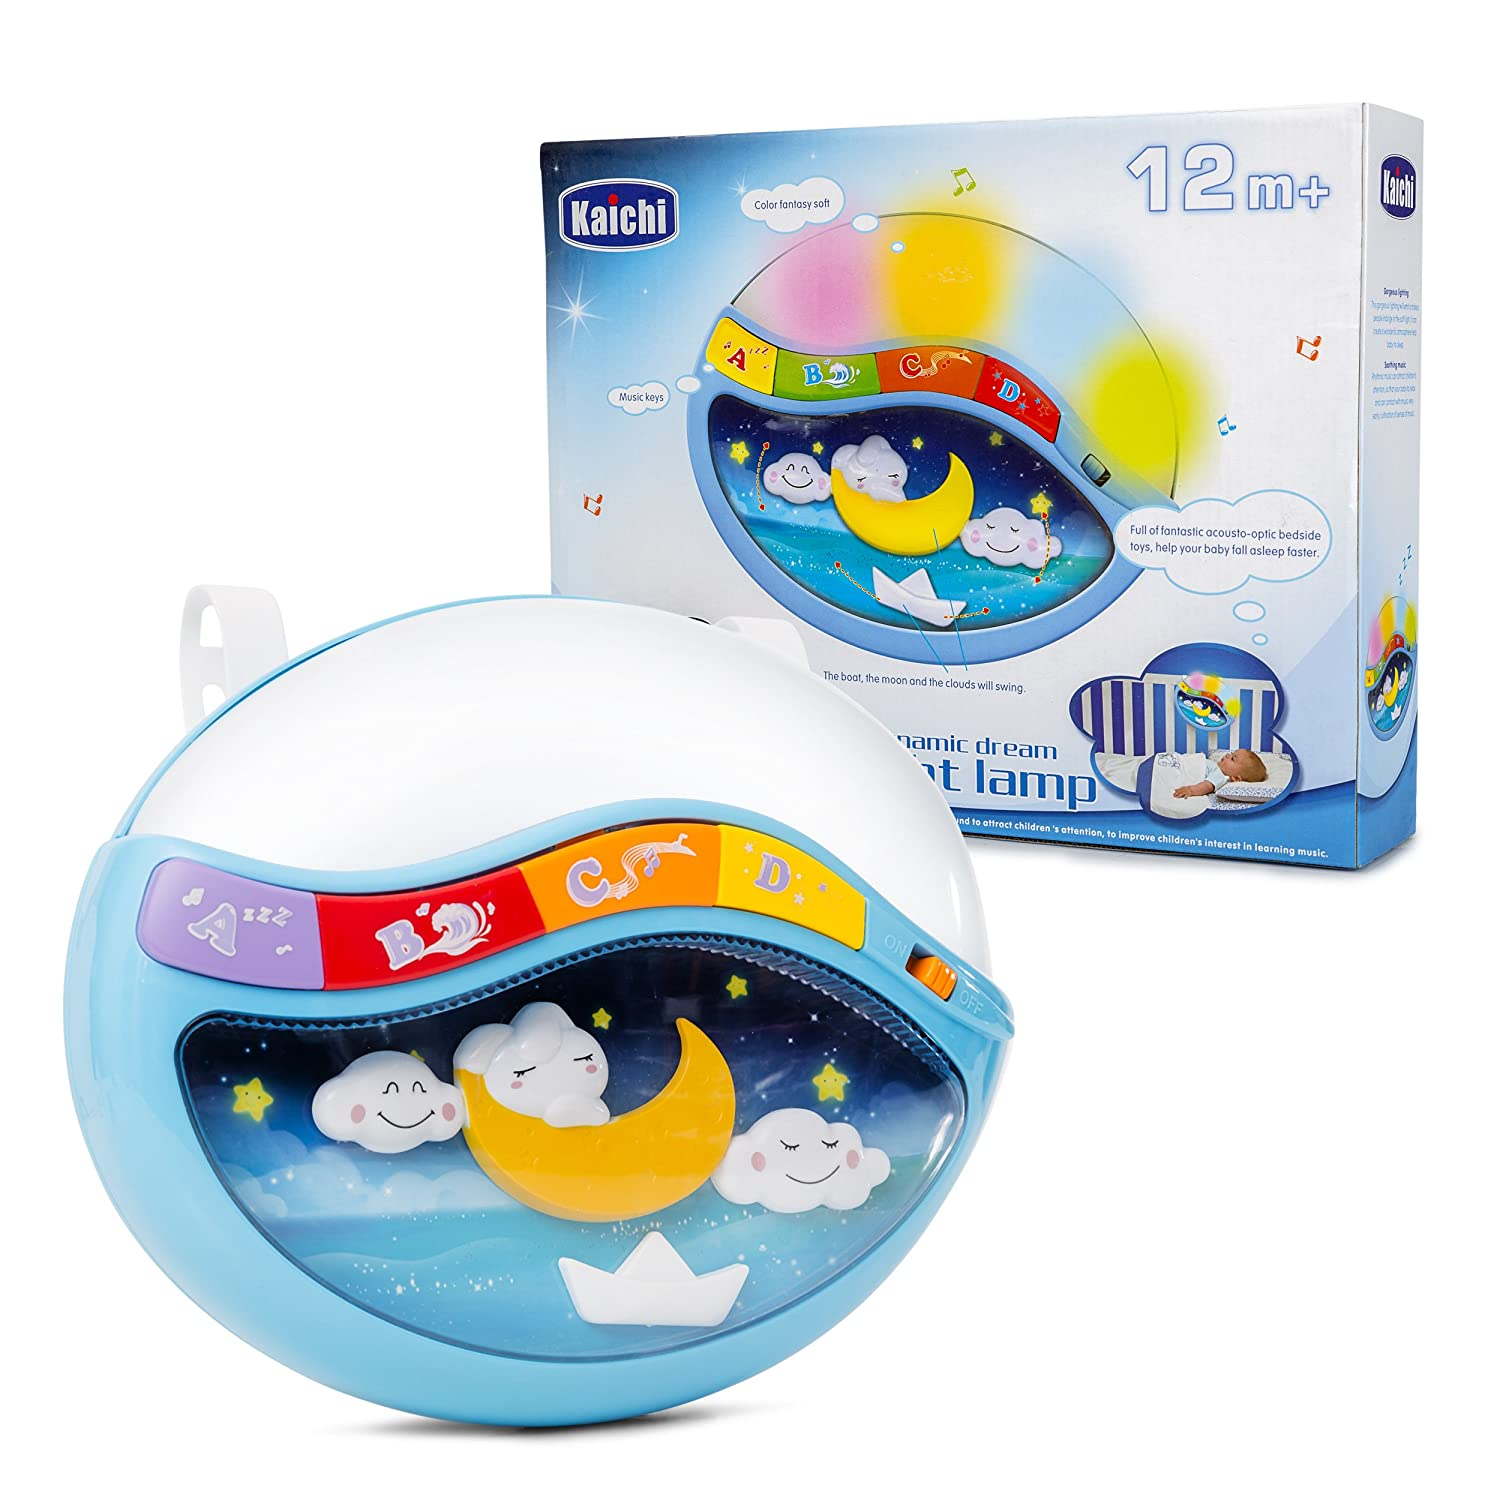 Play Baby Toys Magic Sleep Through The Night Soother Baby Crib Clip In Night Lamp With Multiple Melodies To Put Your Baby To Sleep, In Blue KidsVoiceToys